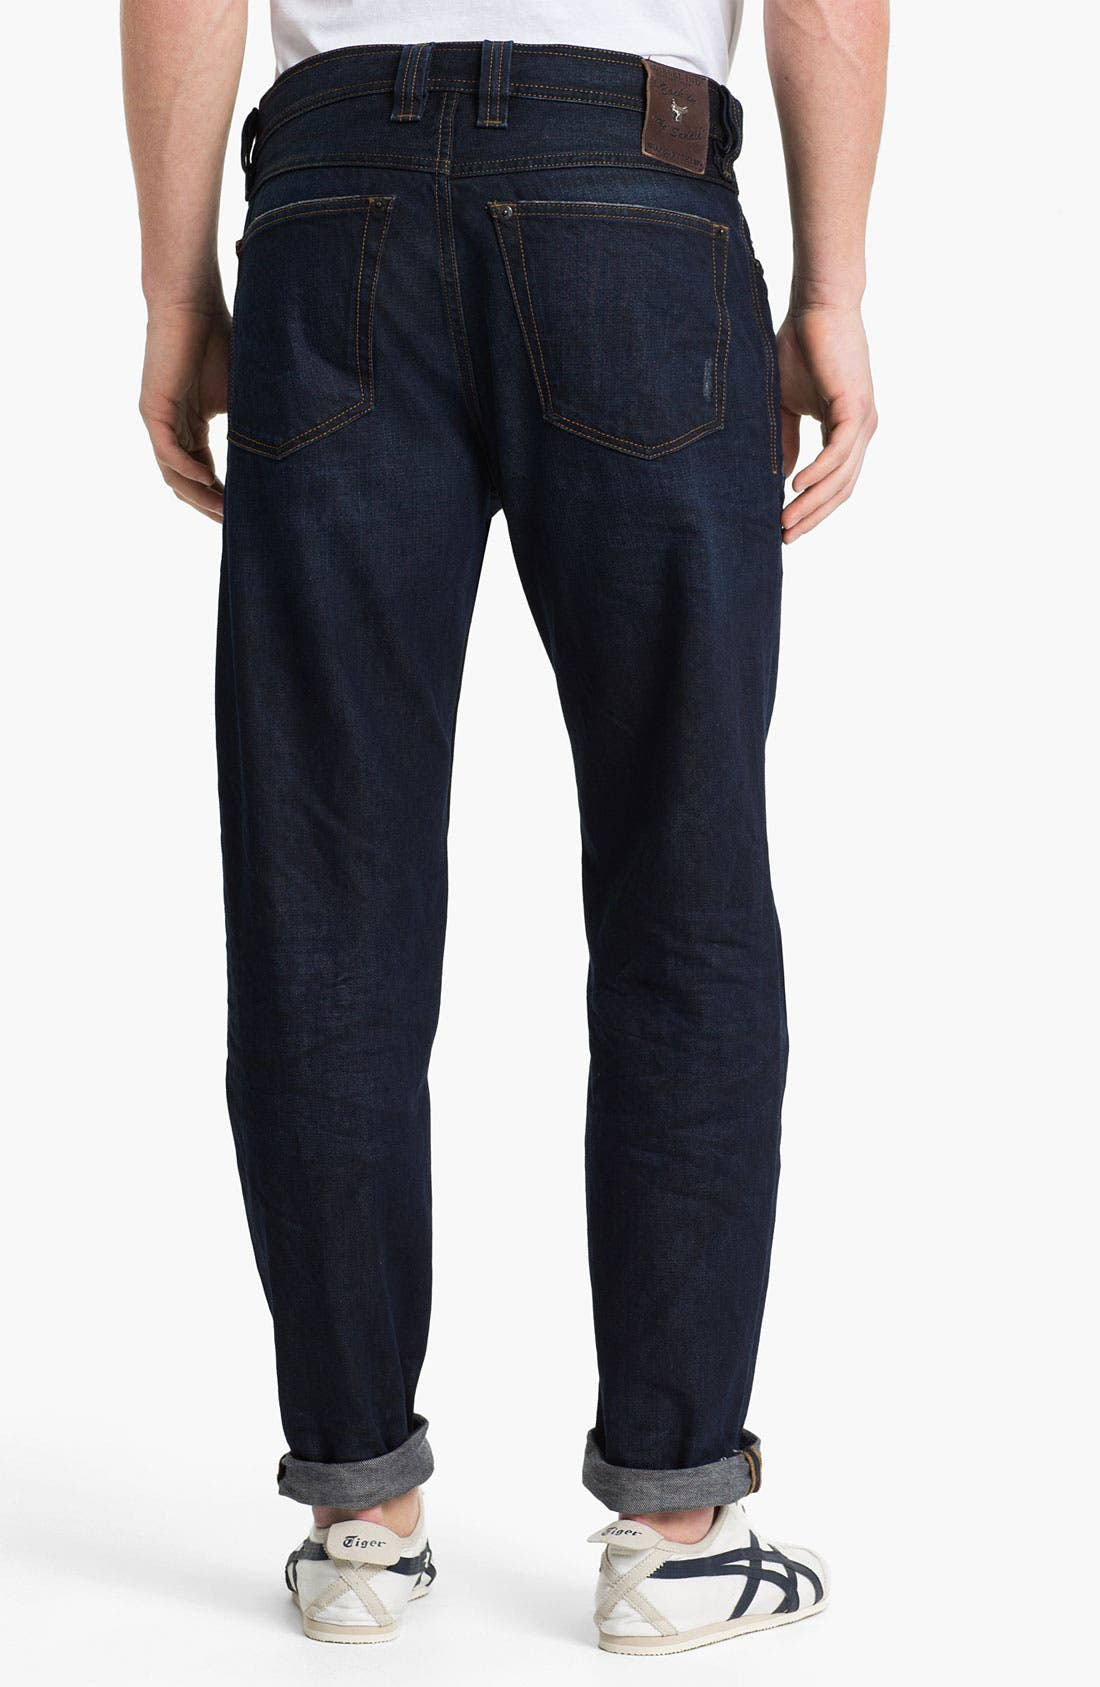 'Back in the Saddle' Relaxed Tapered Leg Jeans,                         Main,                         color, 400